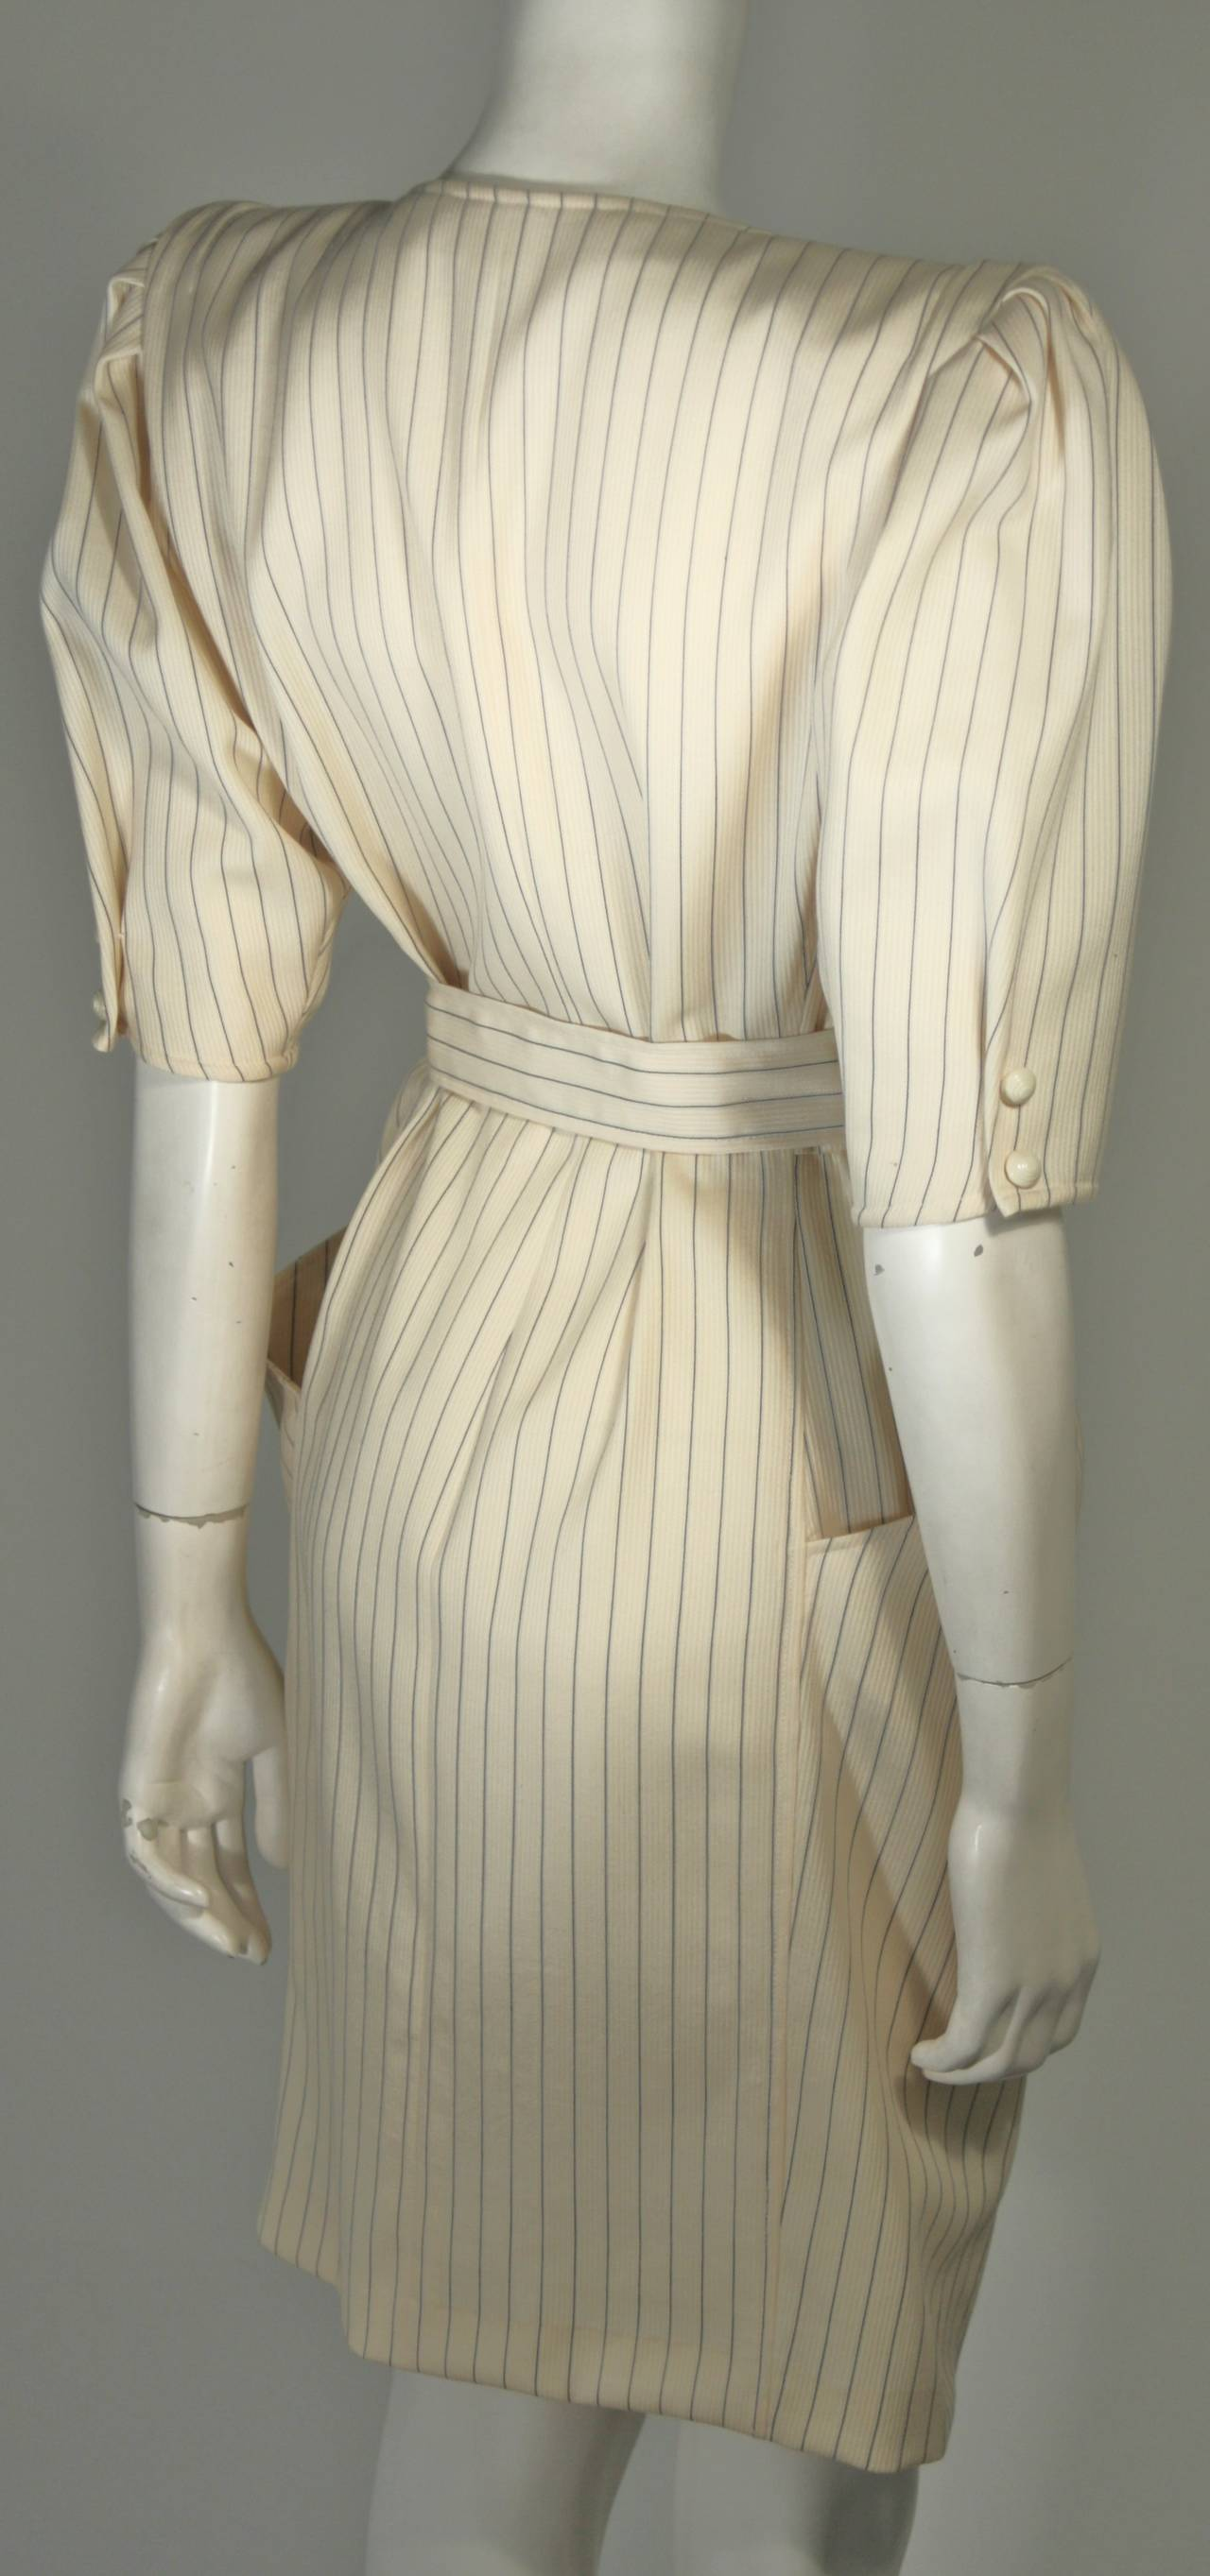 Ungaro Cream Pin Stripe Dress with Center Front Buttons 42 8 For Sale 1